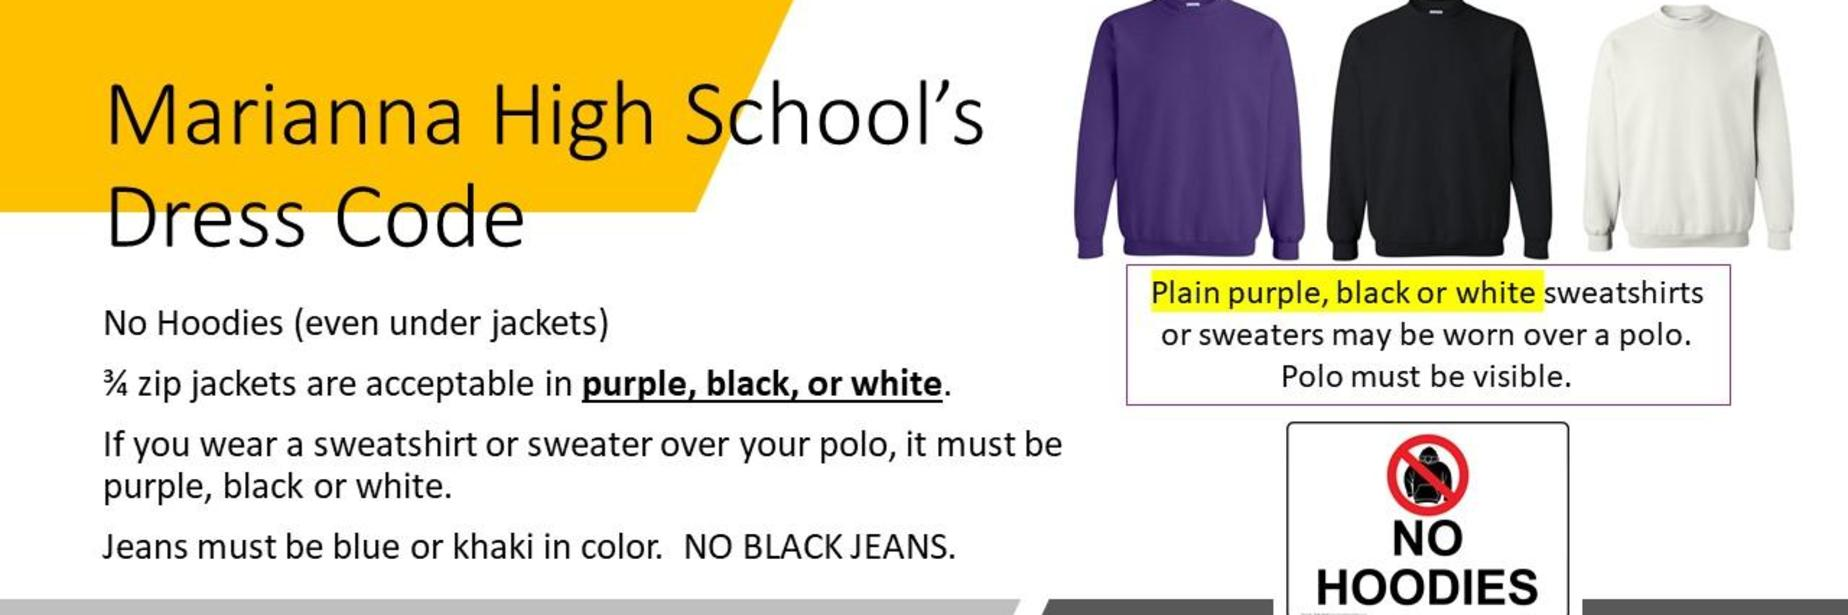 Marianna High School's Winter Dress Code Reminder:  No Hoodies; 3/4 zip jackets are acceptable.  If you wear a sweater or sweatshirt over your polo, it must be purple, black, or white.  Polos must be visable.  Jeans must be blue or khaki in color.  No black jeans.